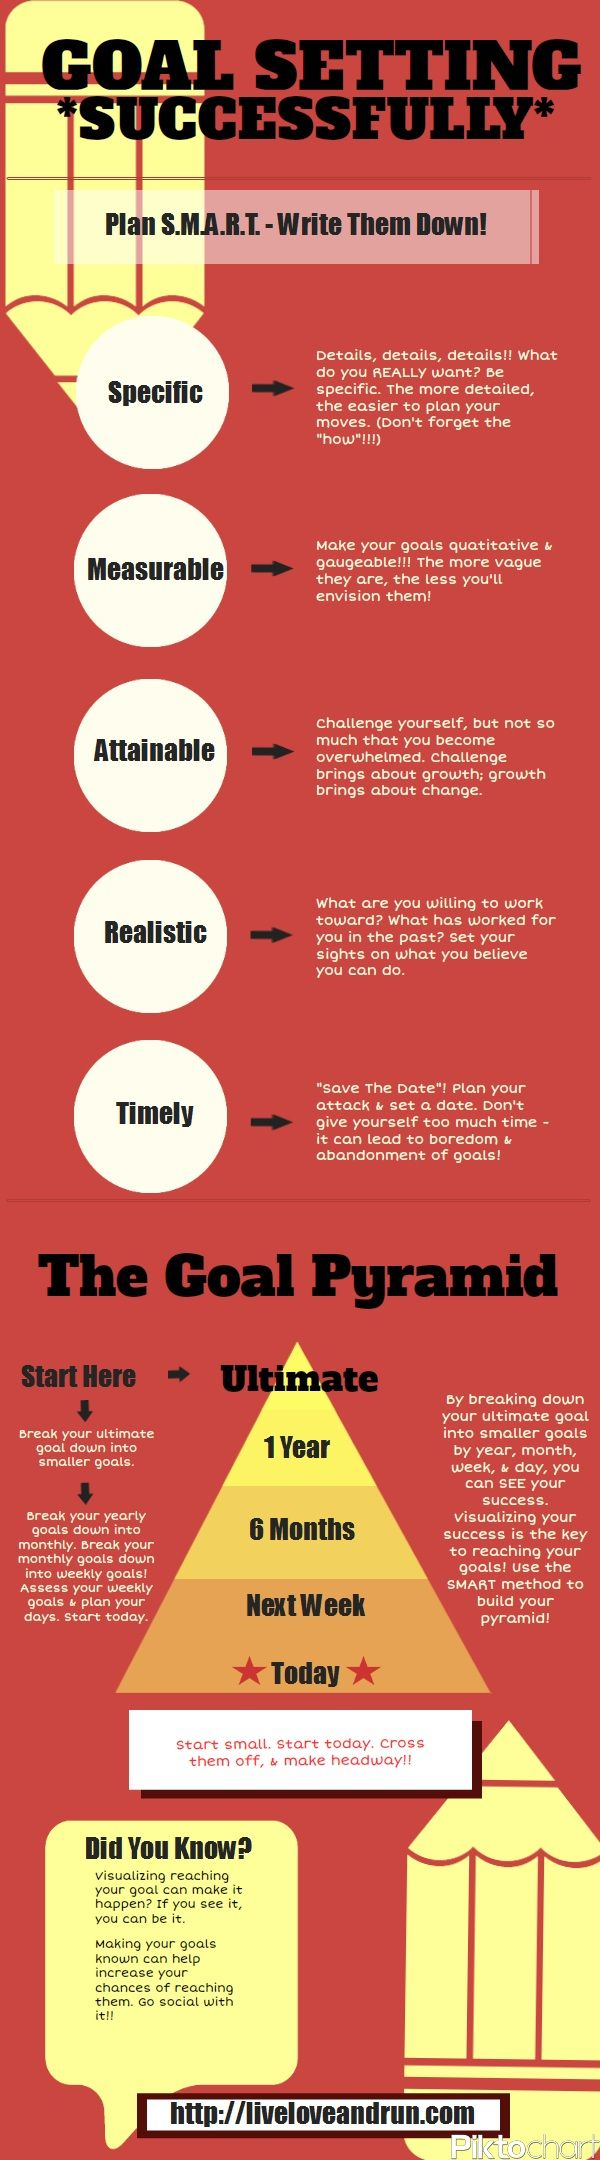 How To Successfully Set Goals - this article describes goal-setting in general, but is a great start for writing SMART IEP goals. For more IEP pins, follow @Connecting for Kids